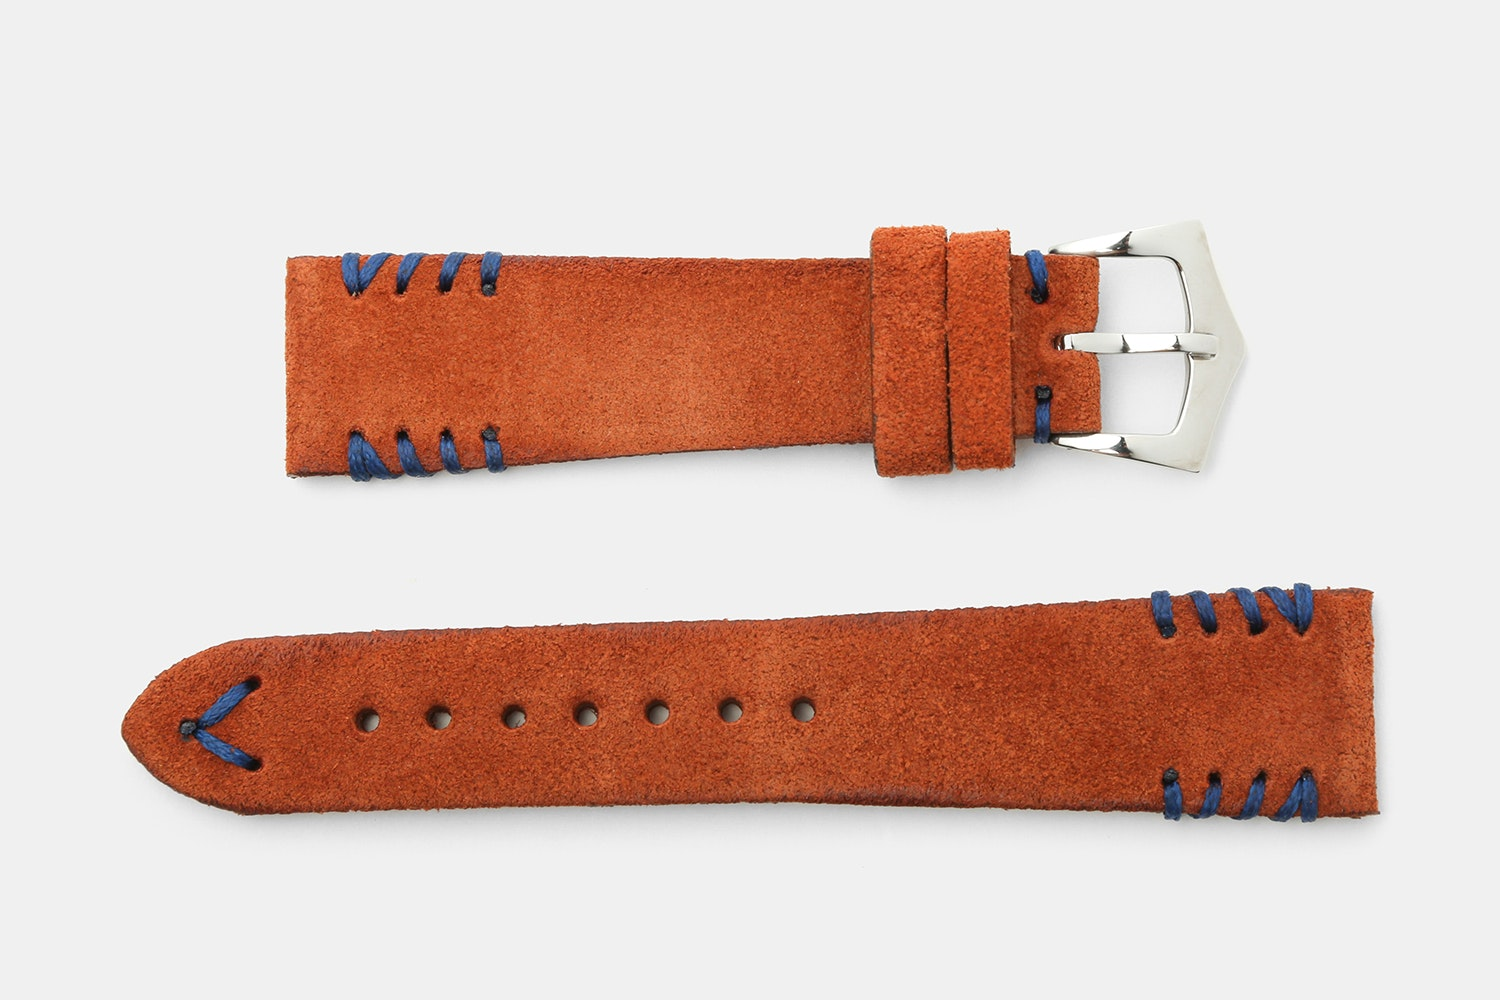 Rust Suede, Blue Stitches